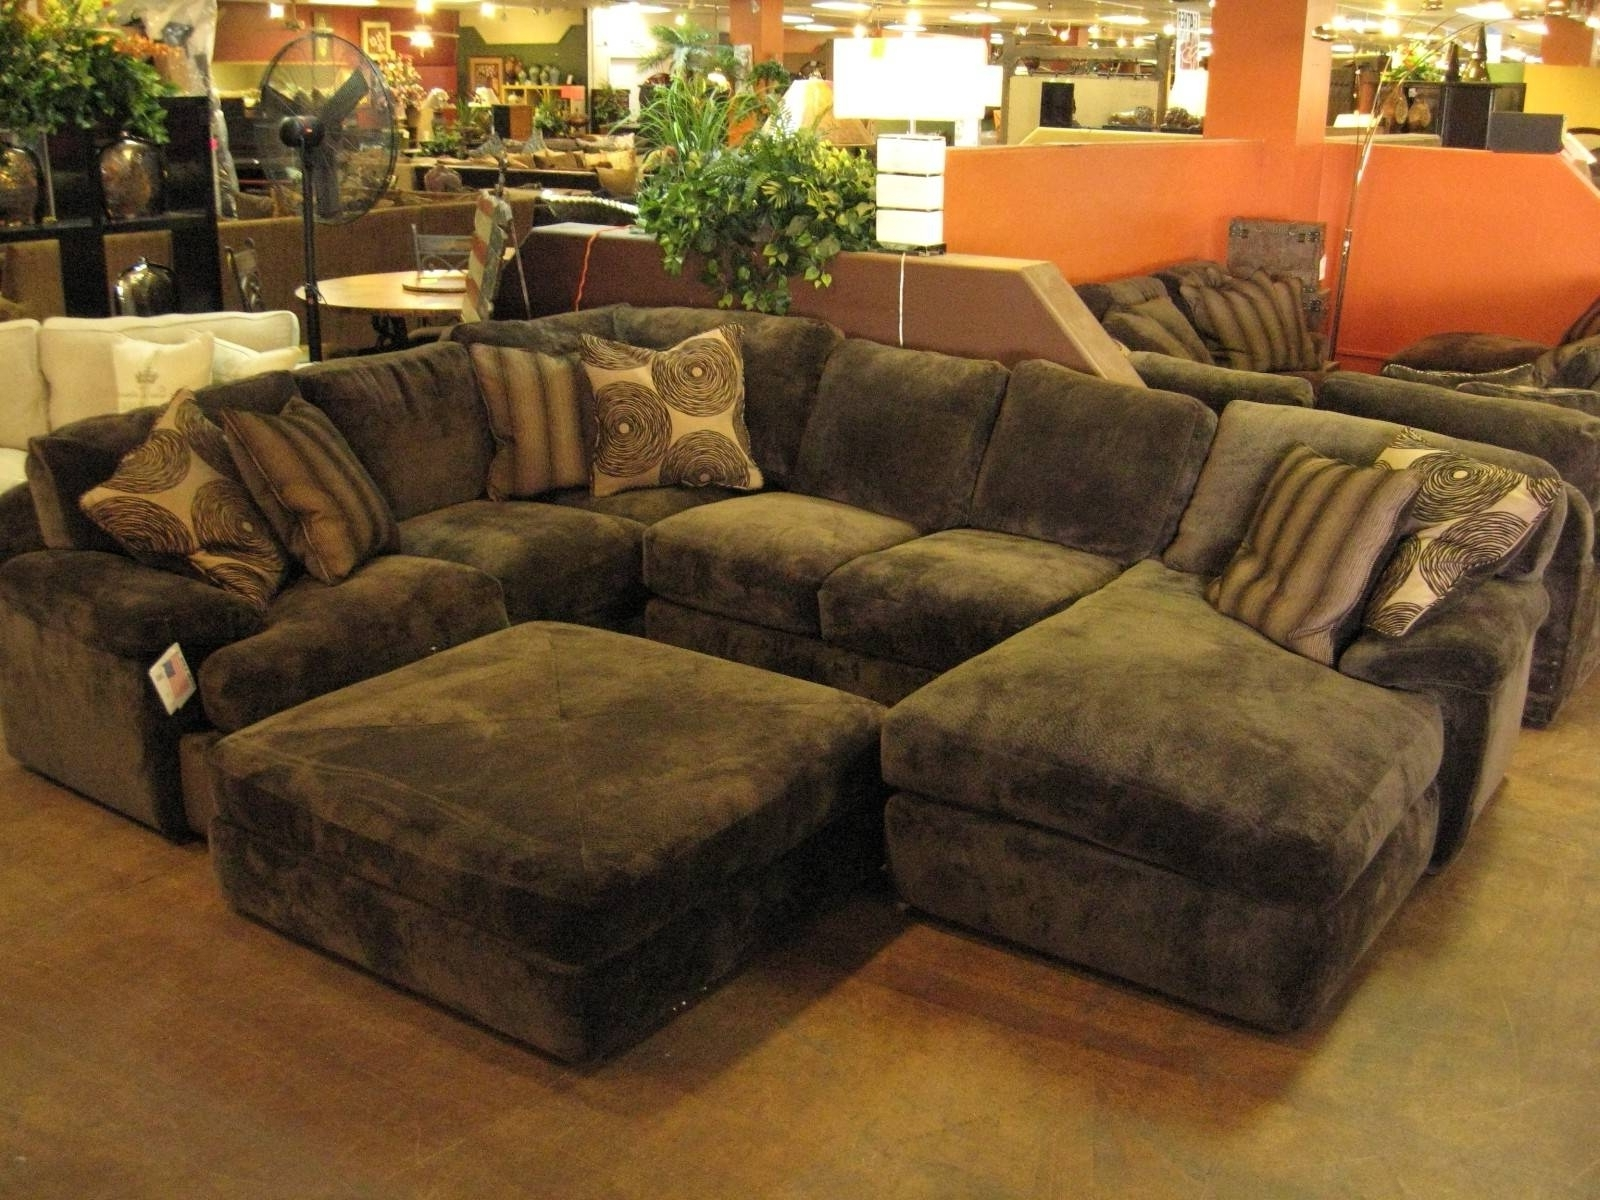 Well Known East Bay Sectional Sofas With Sofa : Craigslist Sectional Illustrious Craigslist Free Section (View 20 of 20)